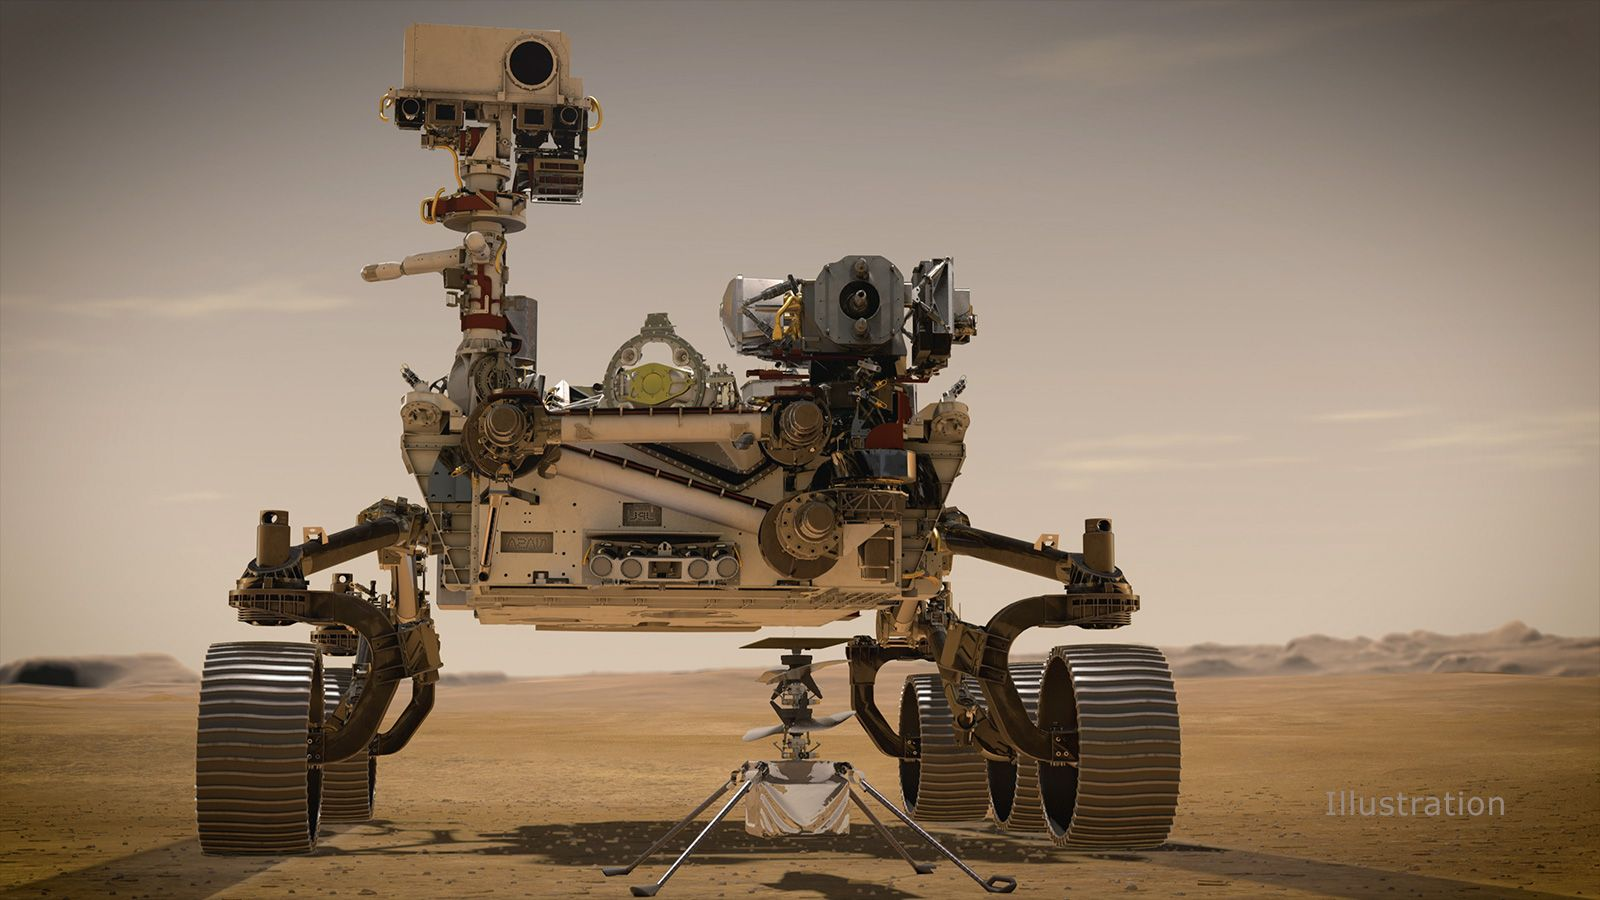 Portrait of Perseverance rover and NASA's Ingenuity Mars Helicopter